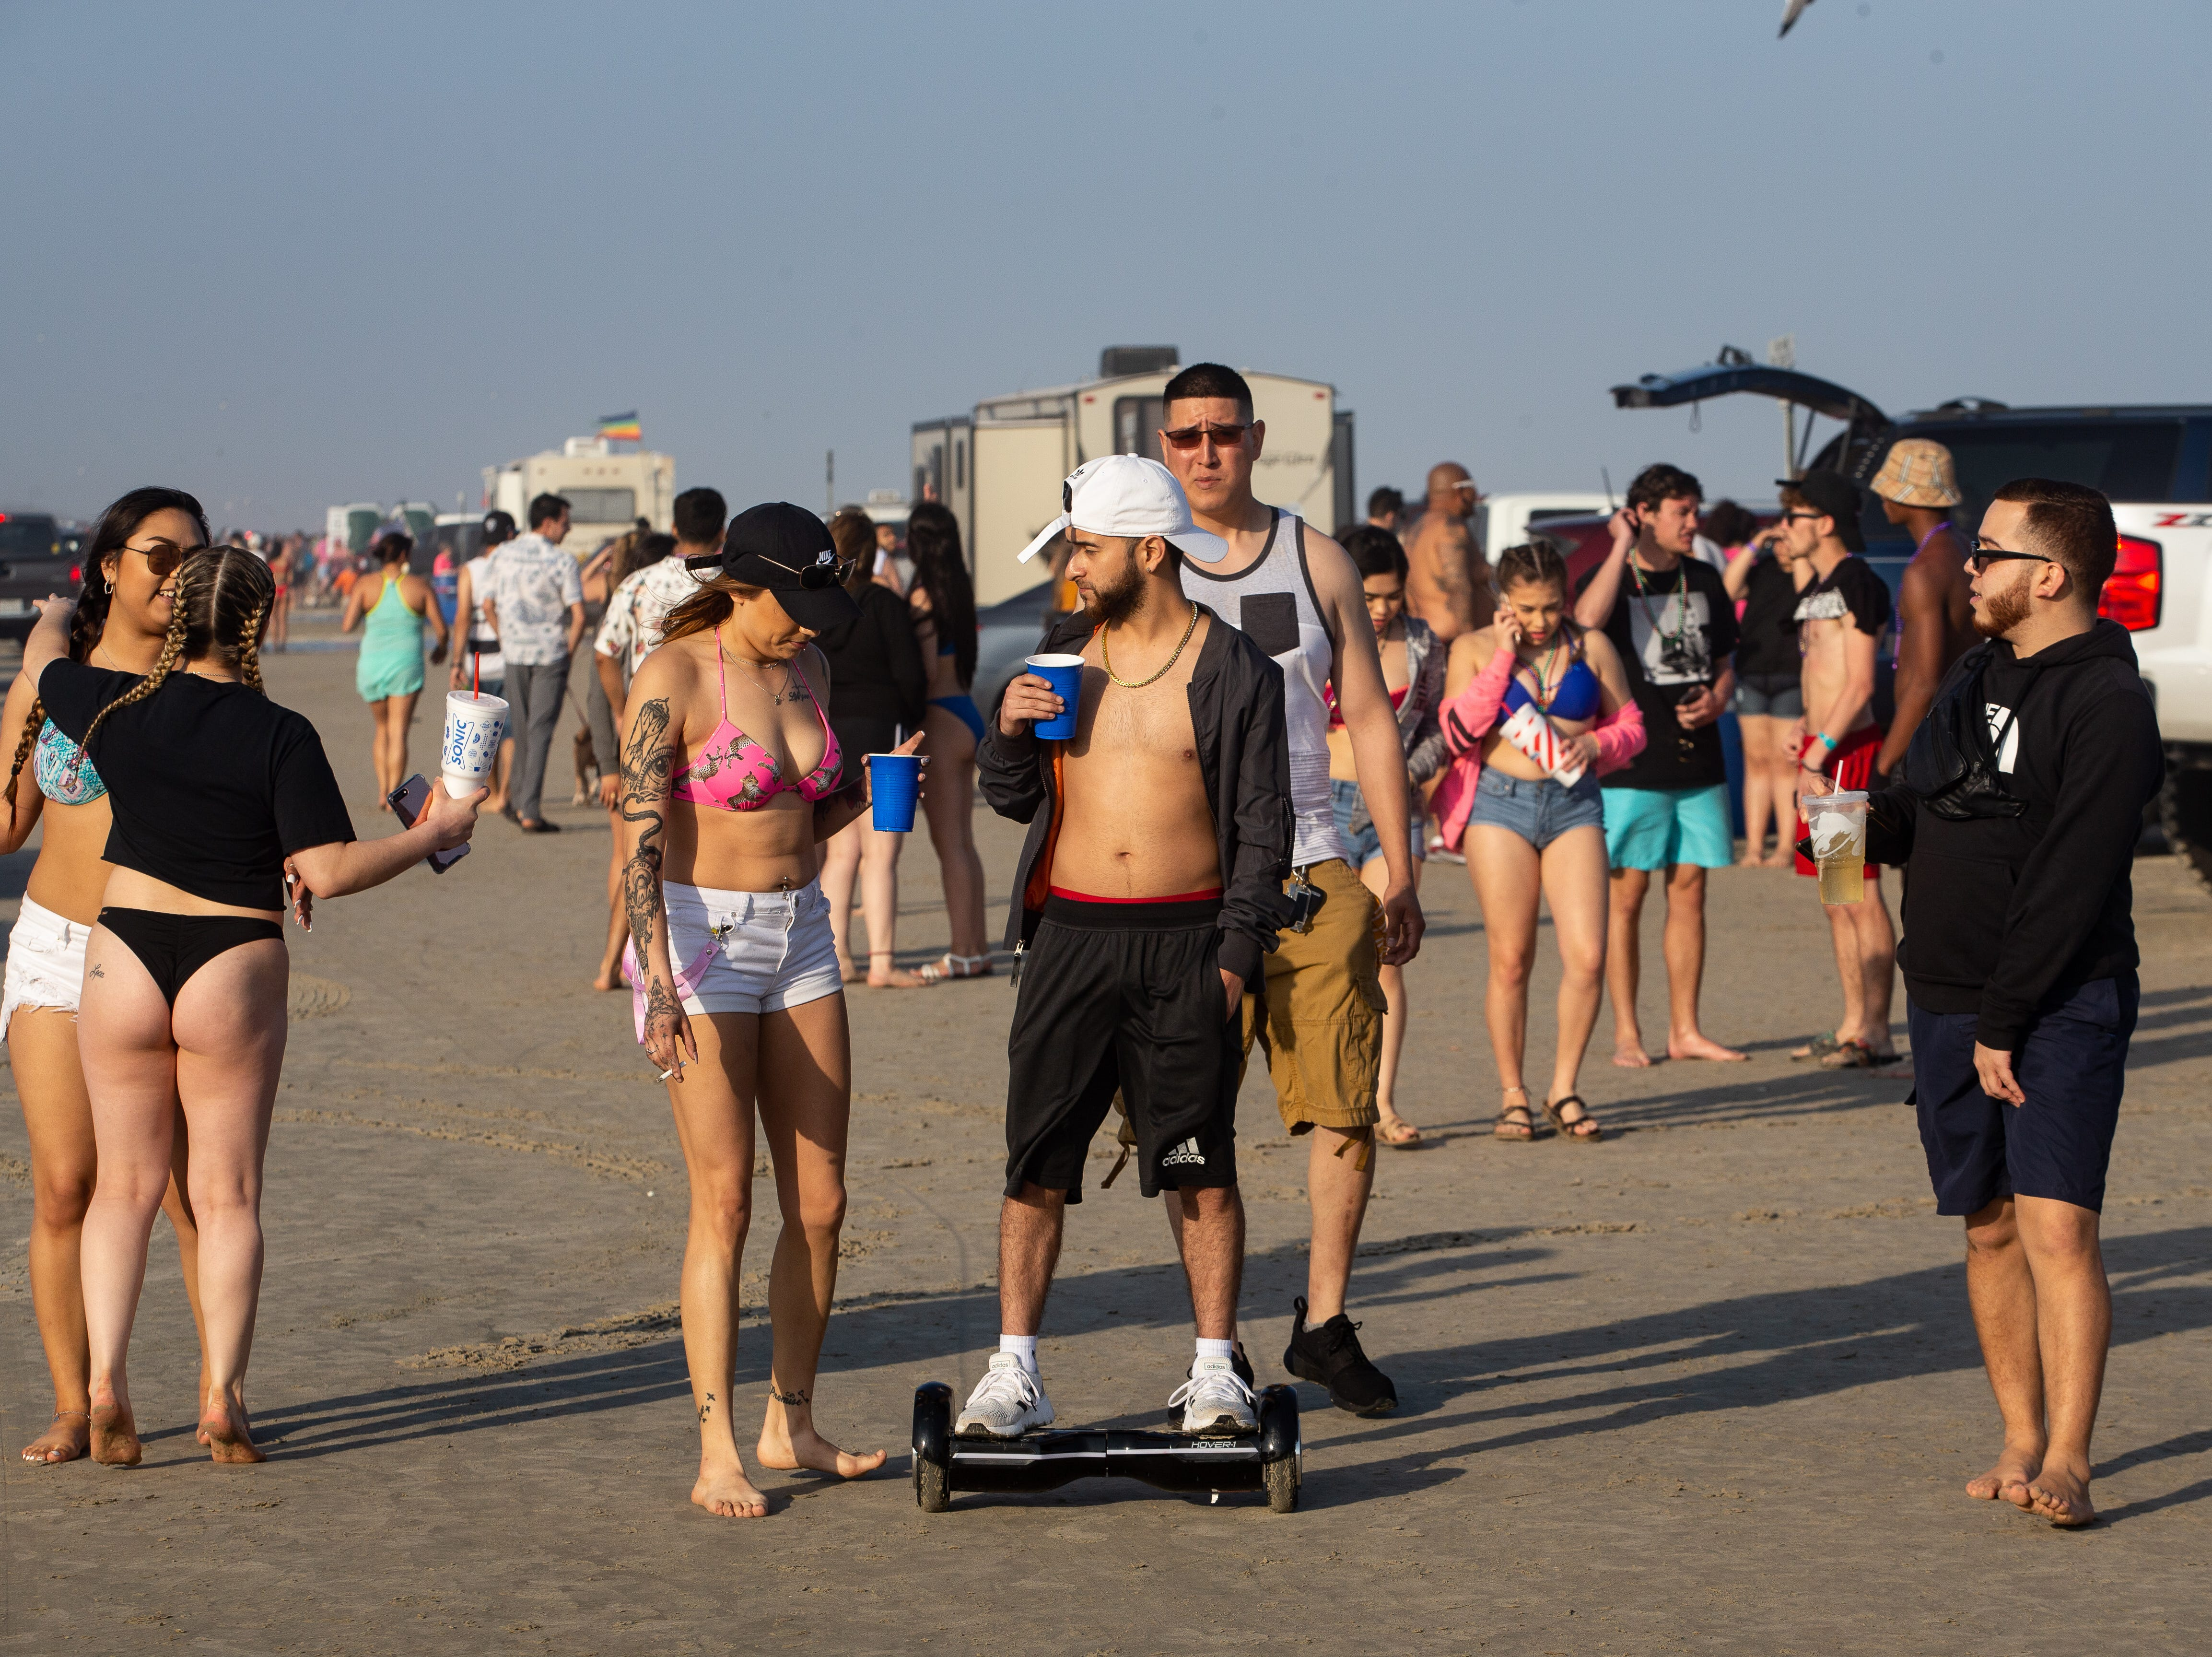 People celebrate spring break 2019 on the beach in Port  Aransas on Wednesday, March, 13, 2019.